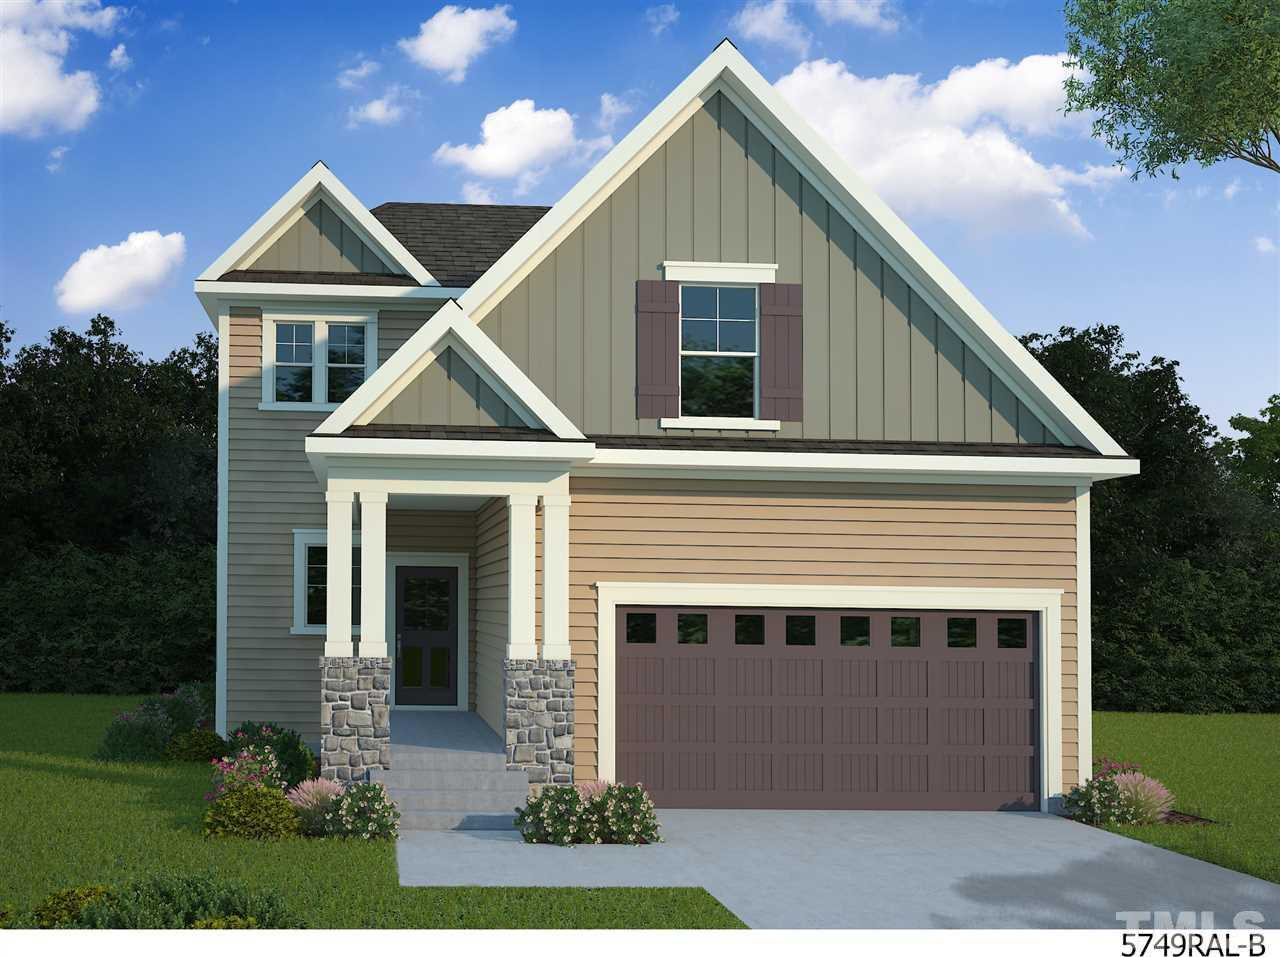 $364,945 - 4Br/3Ba -  for Sale in Briar Chapel, Chapel Hill